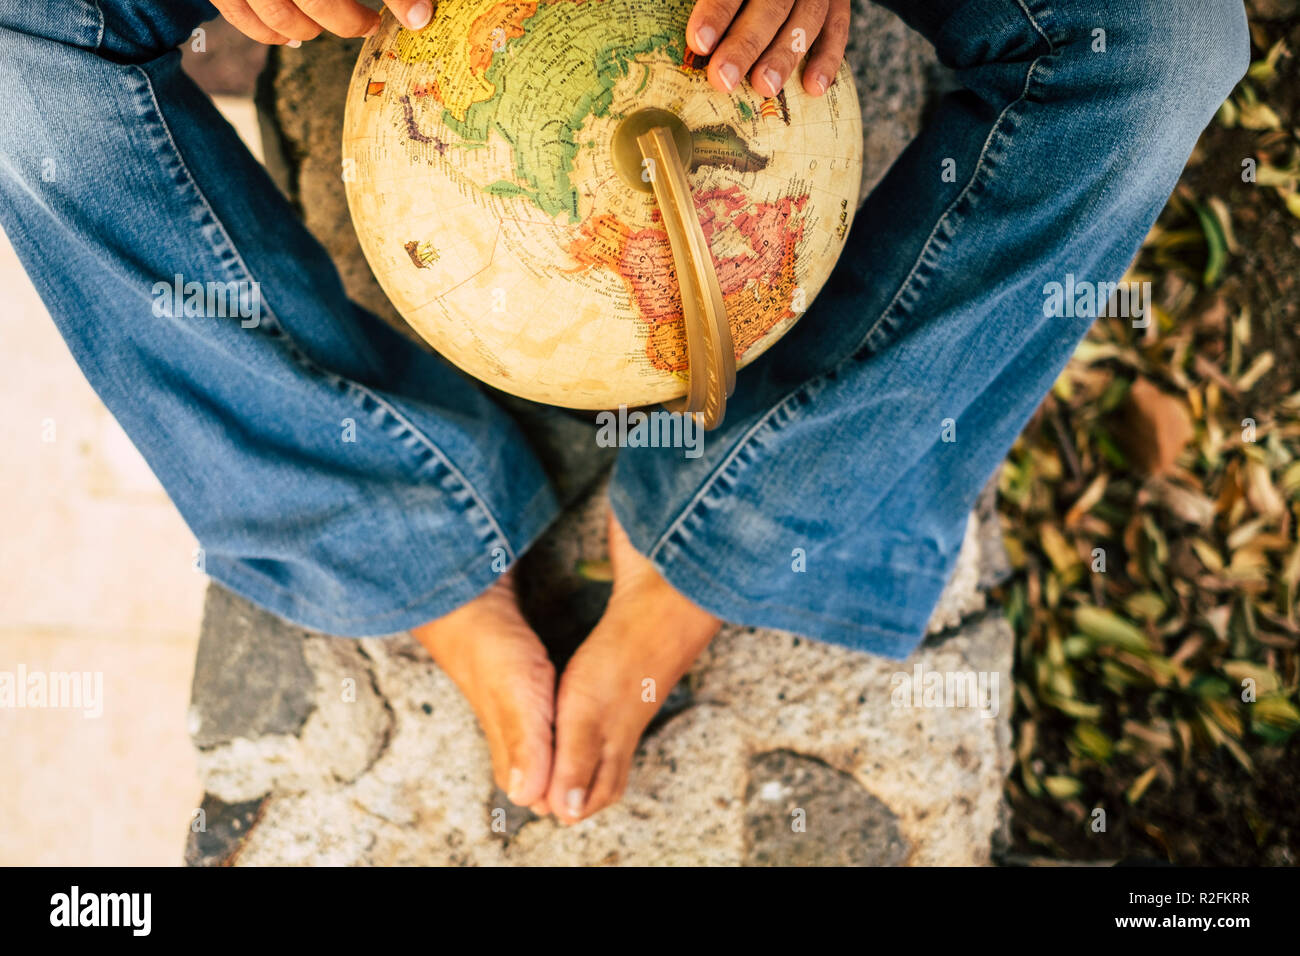 traveler caucasian legs and hands with a earth globe sphere in the middle choosing the next trip journay vacation destination rounding the map.  travel explore and young modern people concept wanderlust - Stock Image